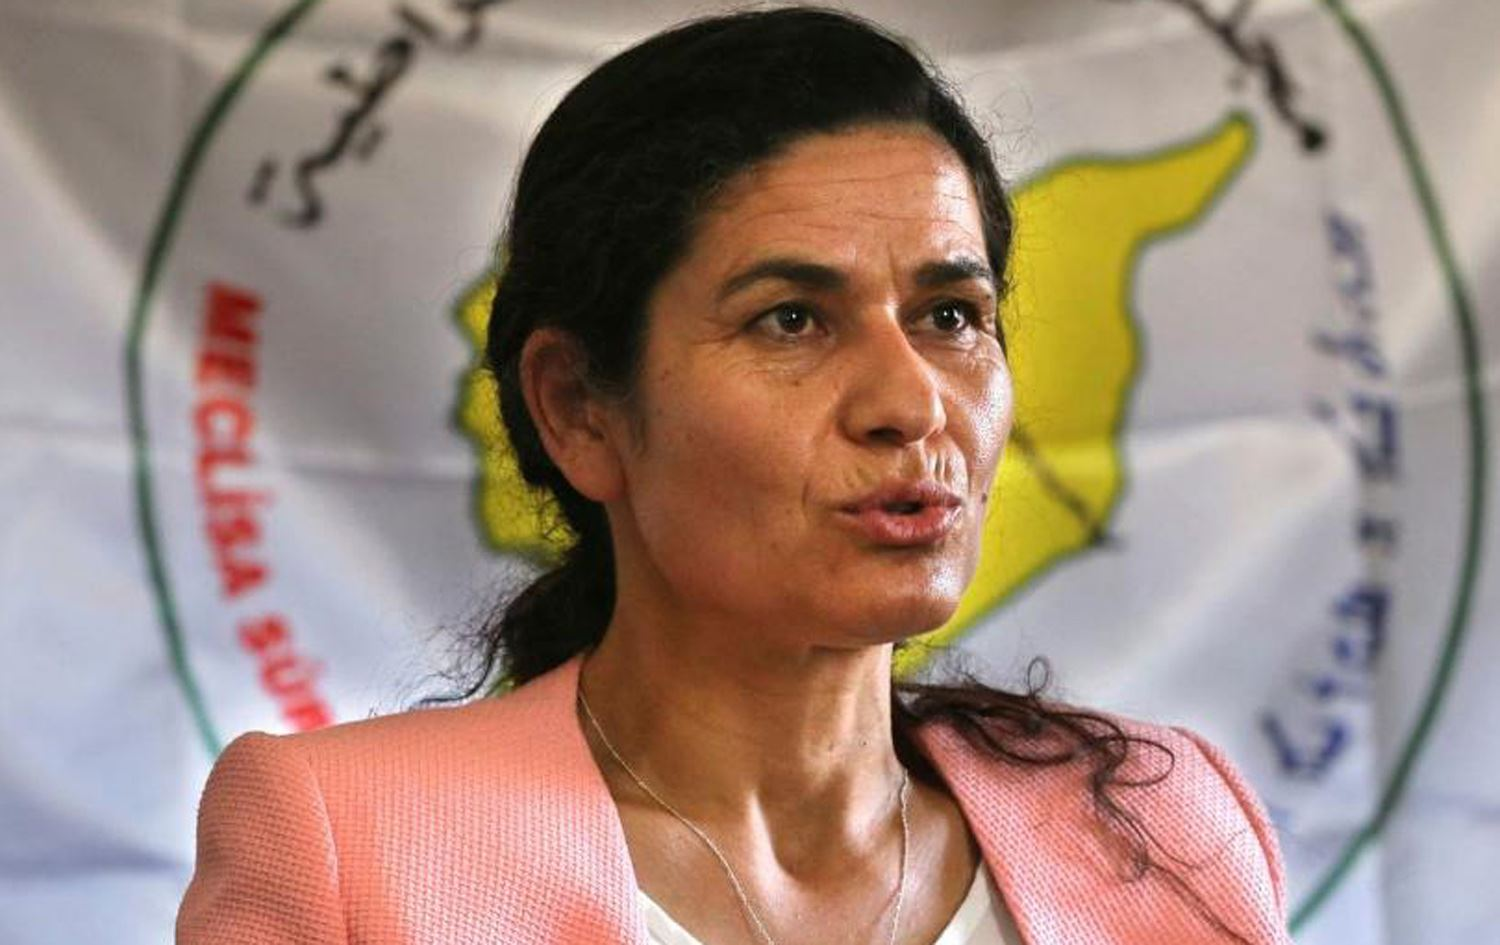 Ilham Ahmed, the chair of the Executive Board the Autonomous Administration of North and East Syria (AANES)